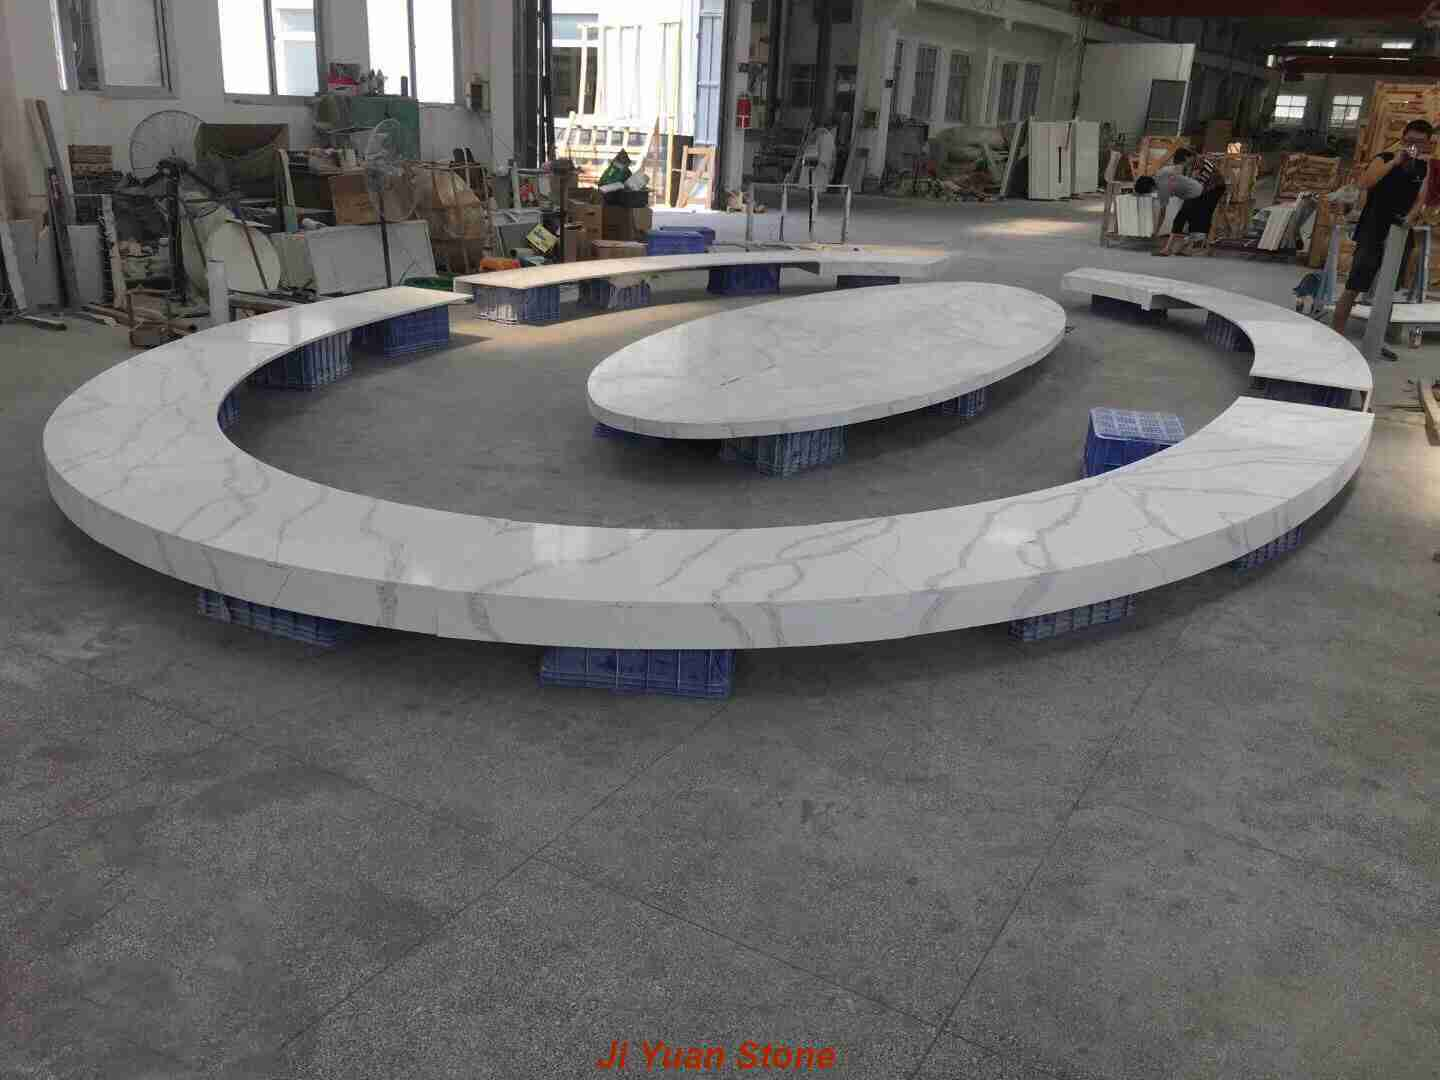 marble island table,round marble dining table and chairs,marble dining table for sale,large marble dining table,marble table and chairs for sale,buy marble table top